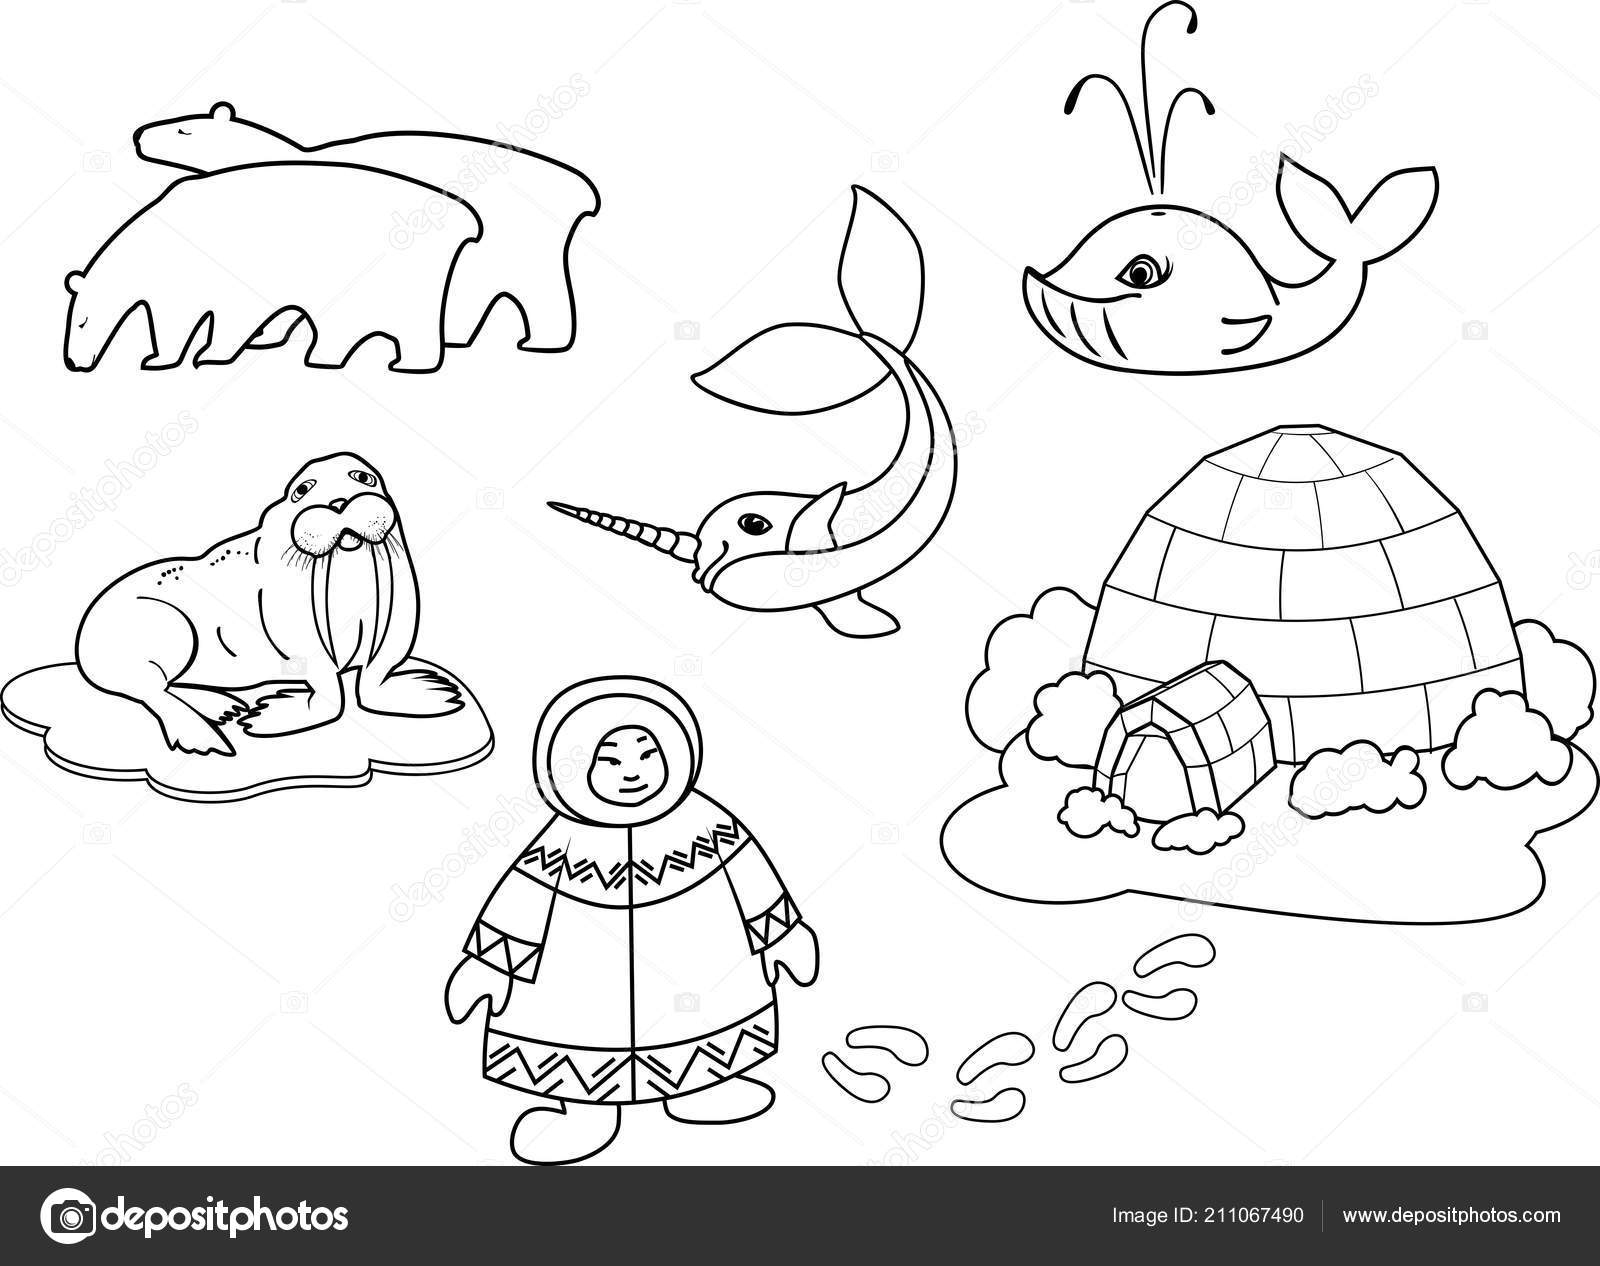 Coloring Page Eskimo National Clothes Igloo Different Cartoon